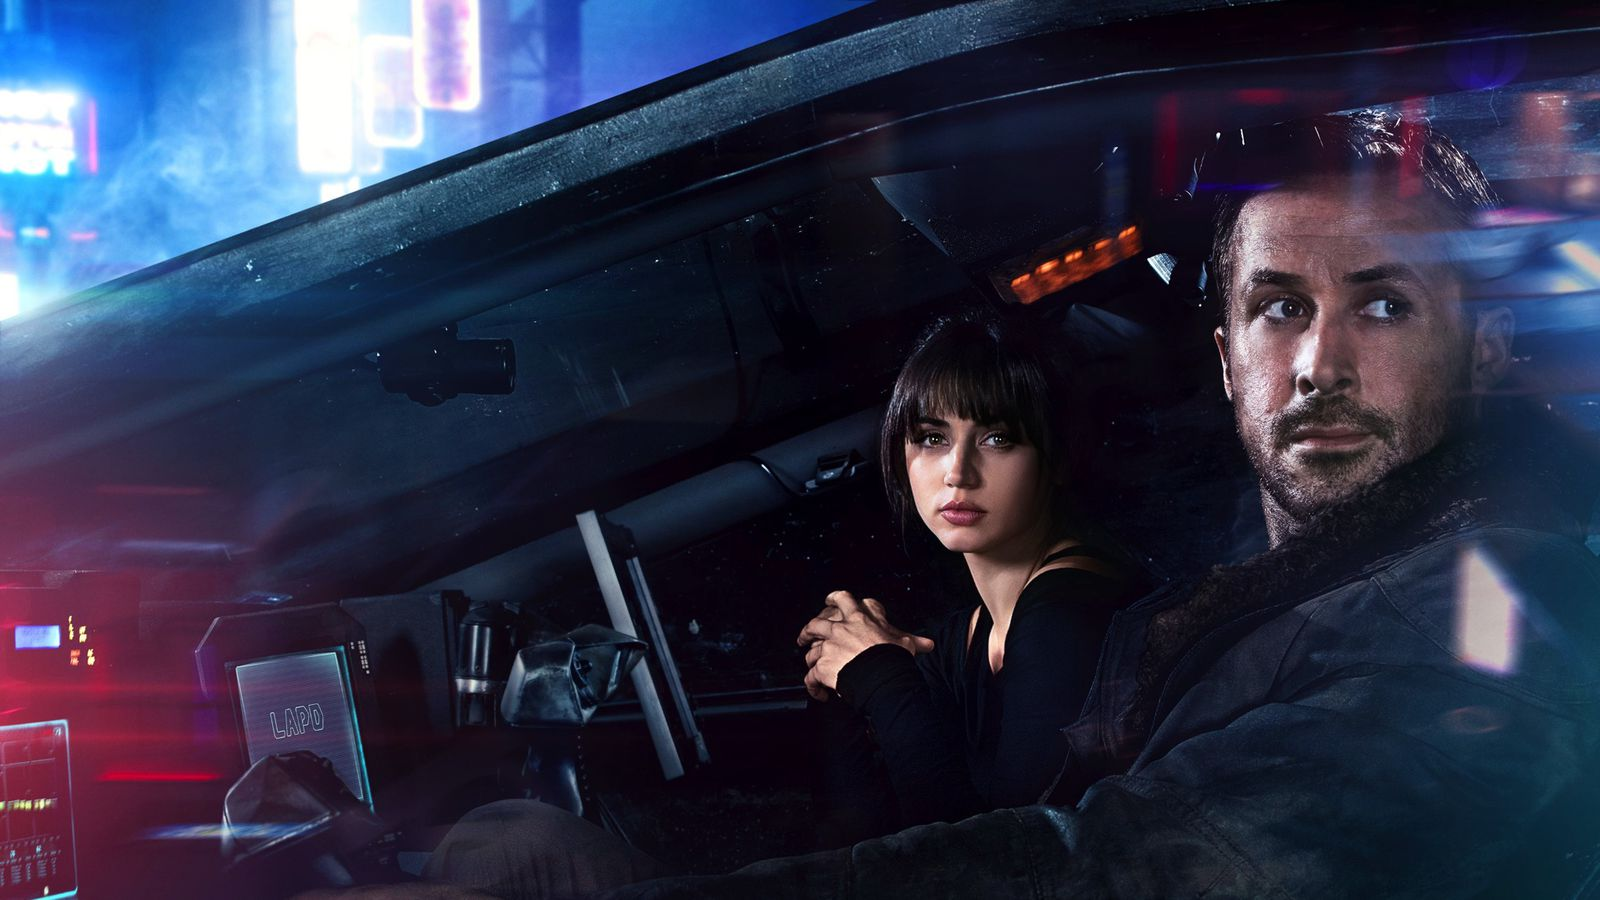 Blade Runner 2049 looks like a careful extension of Ridley Scott's vision